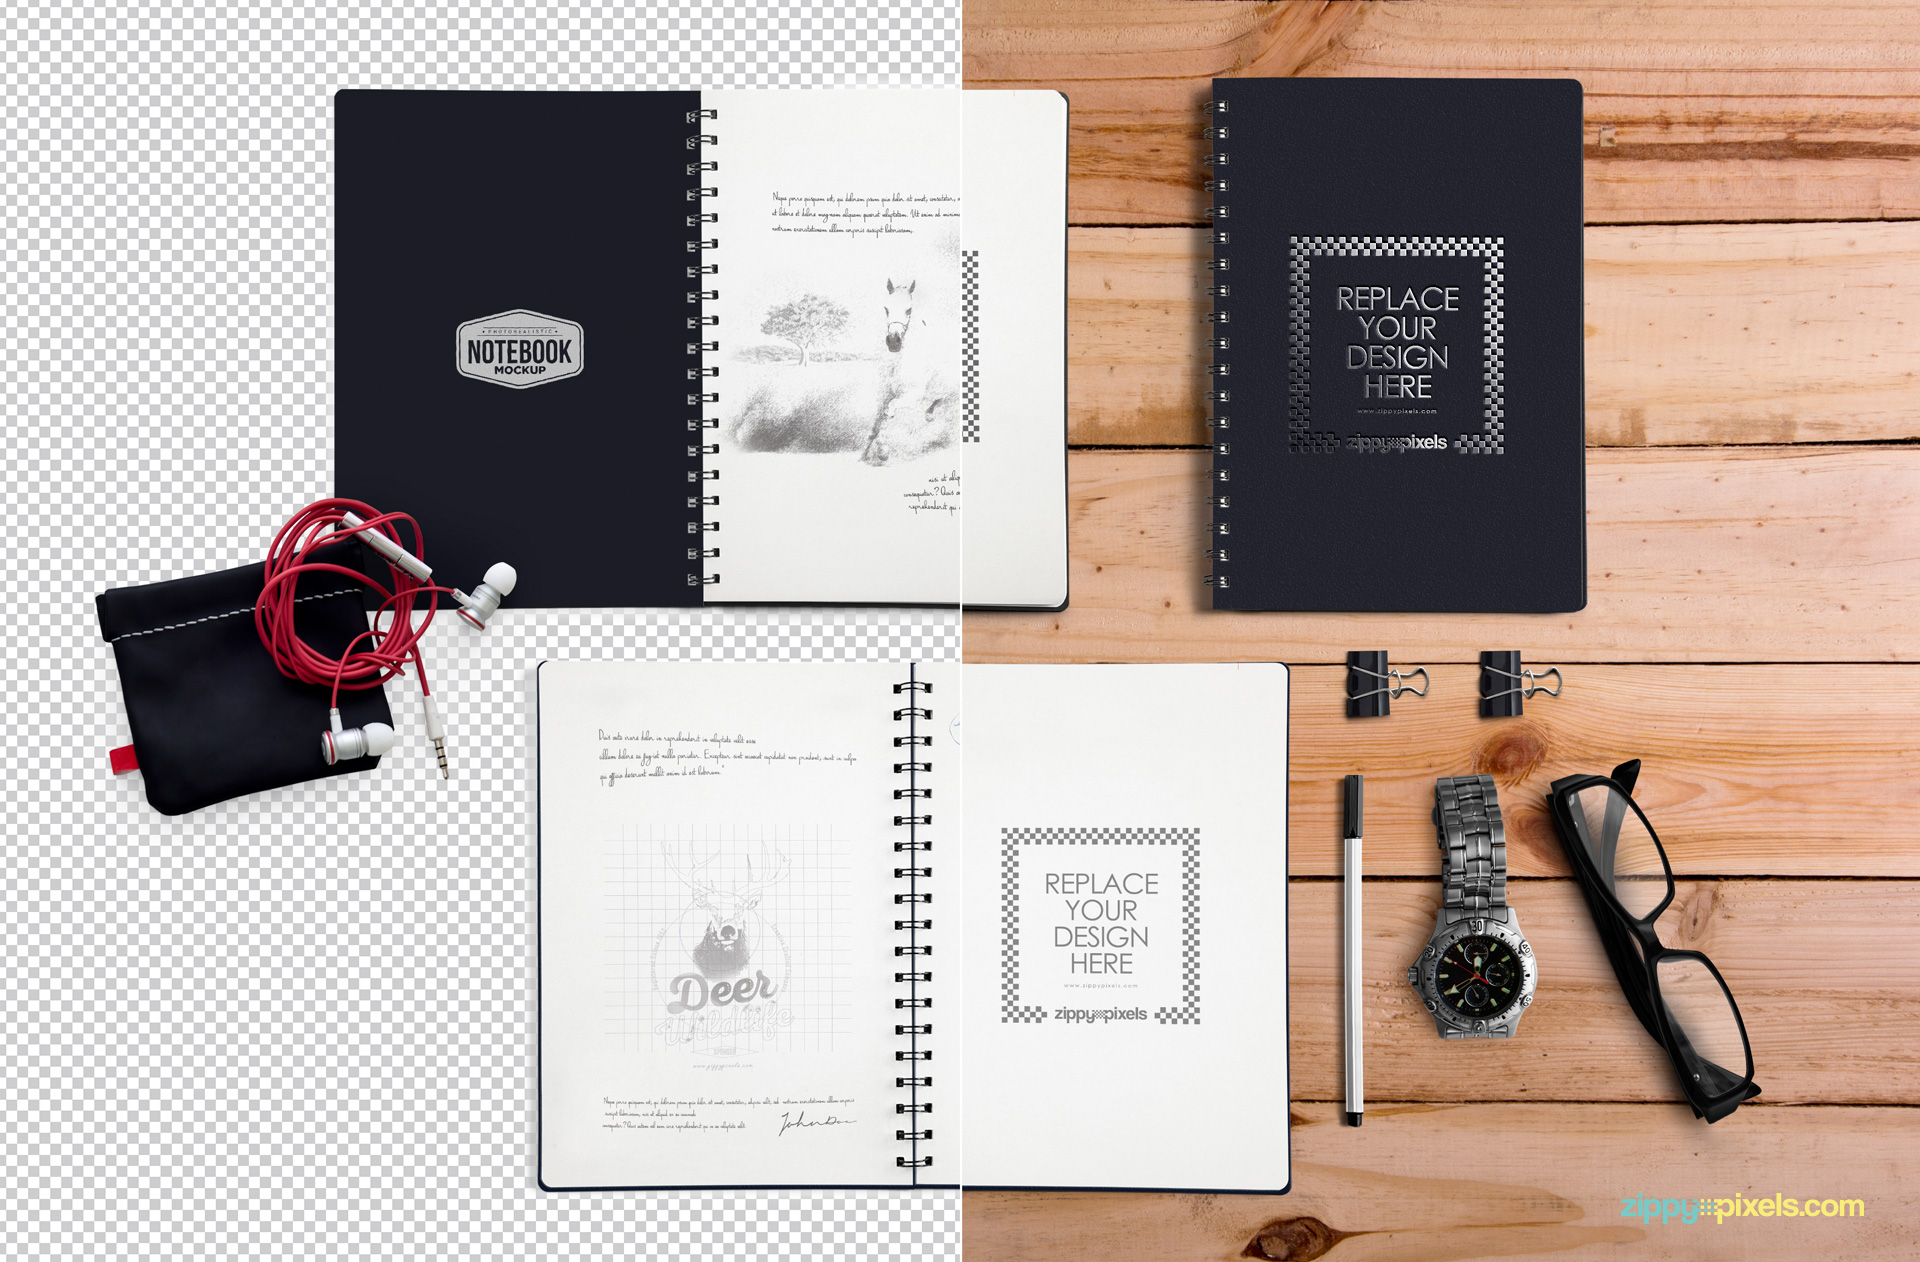 05-free-notebook-cover-mockup-824x542